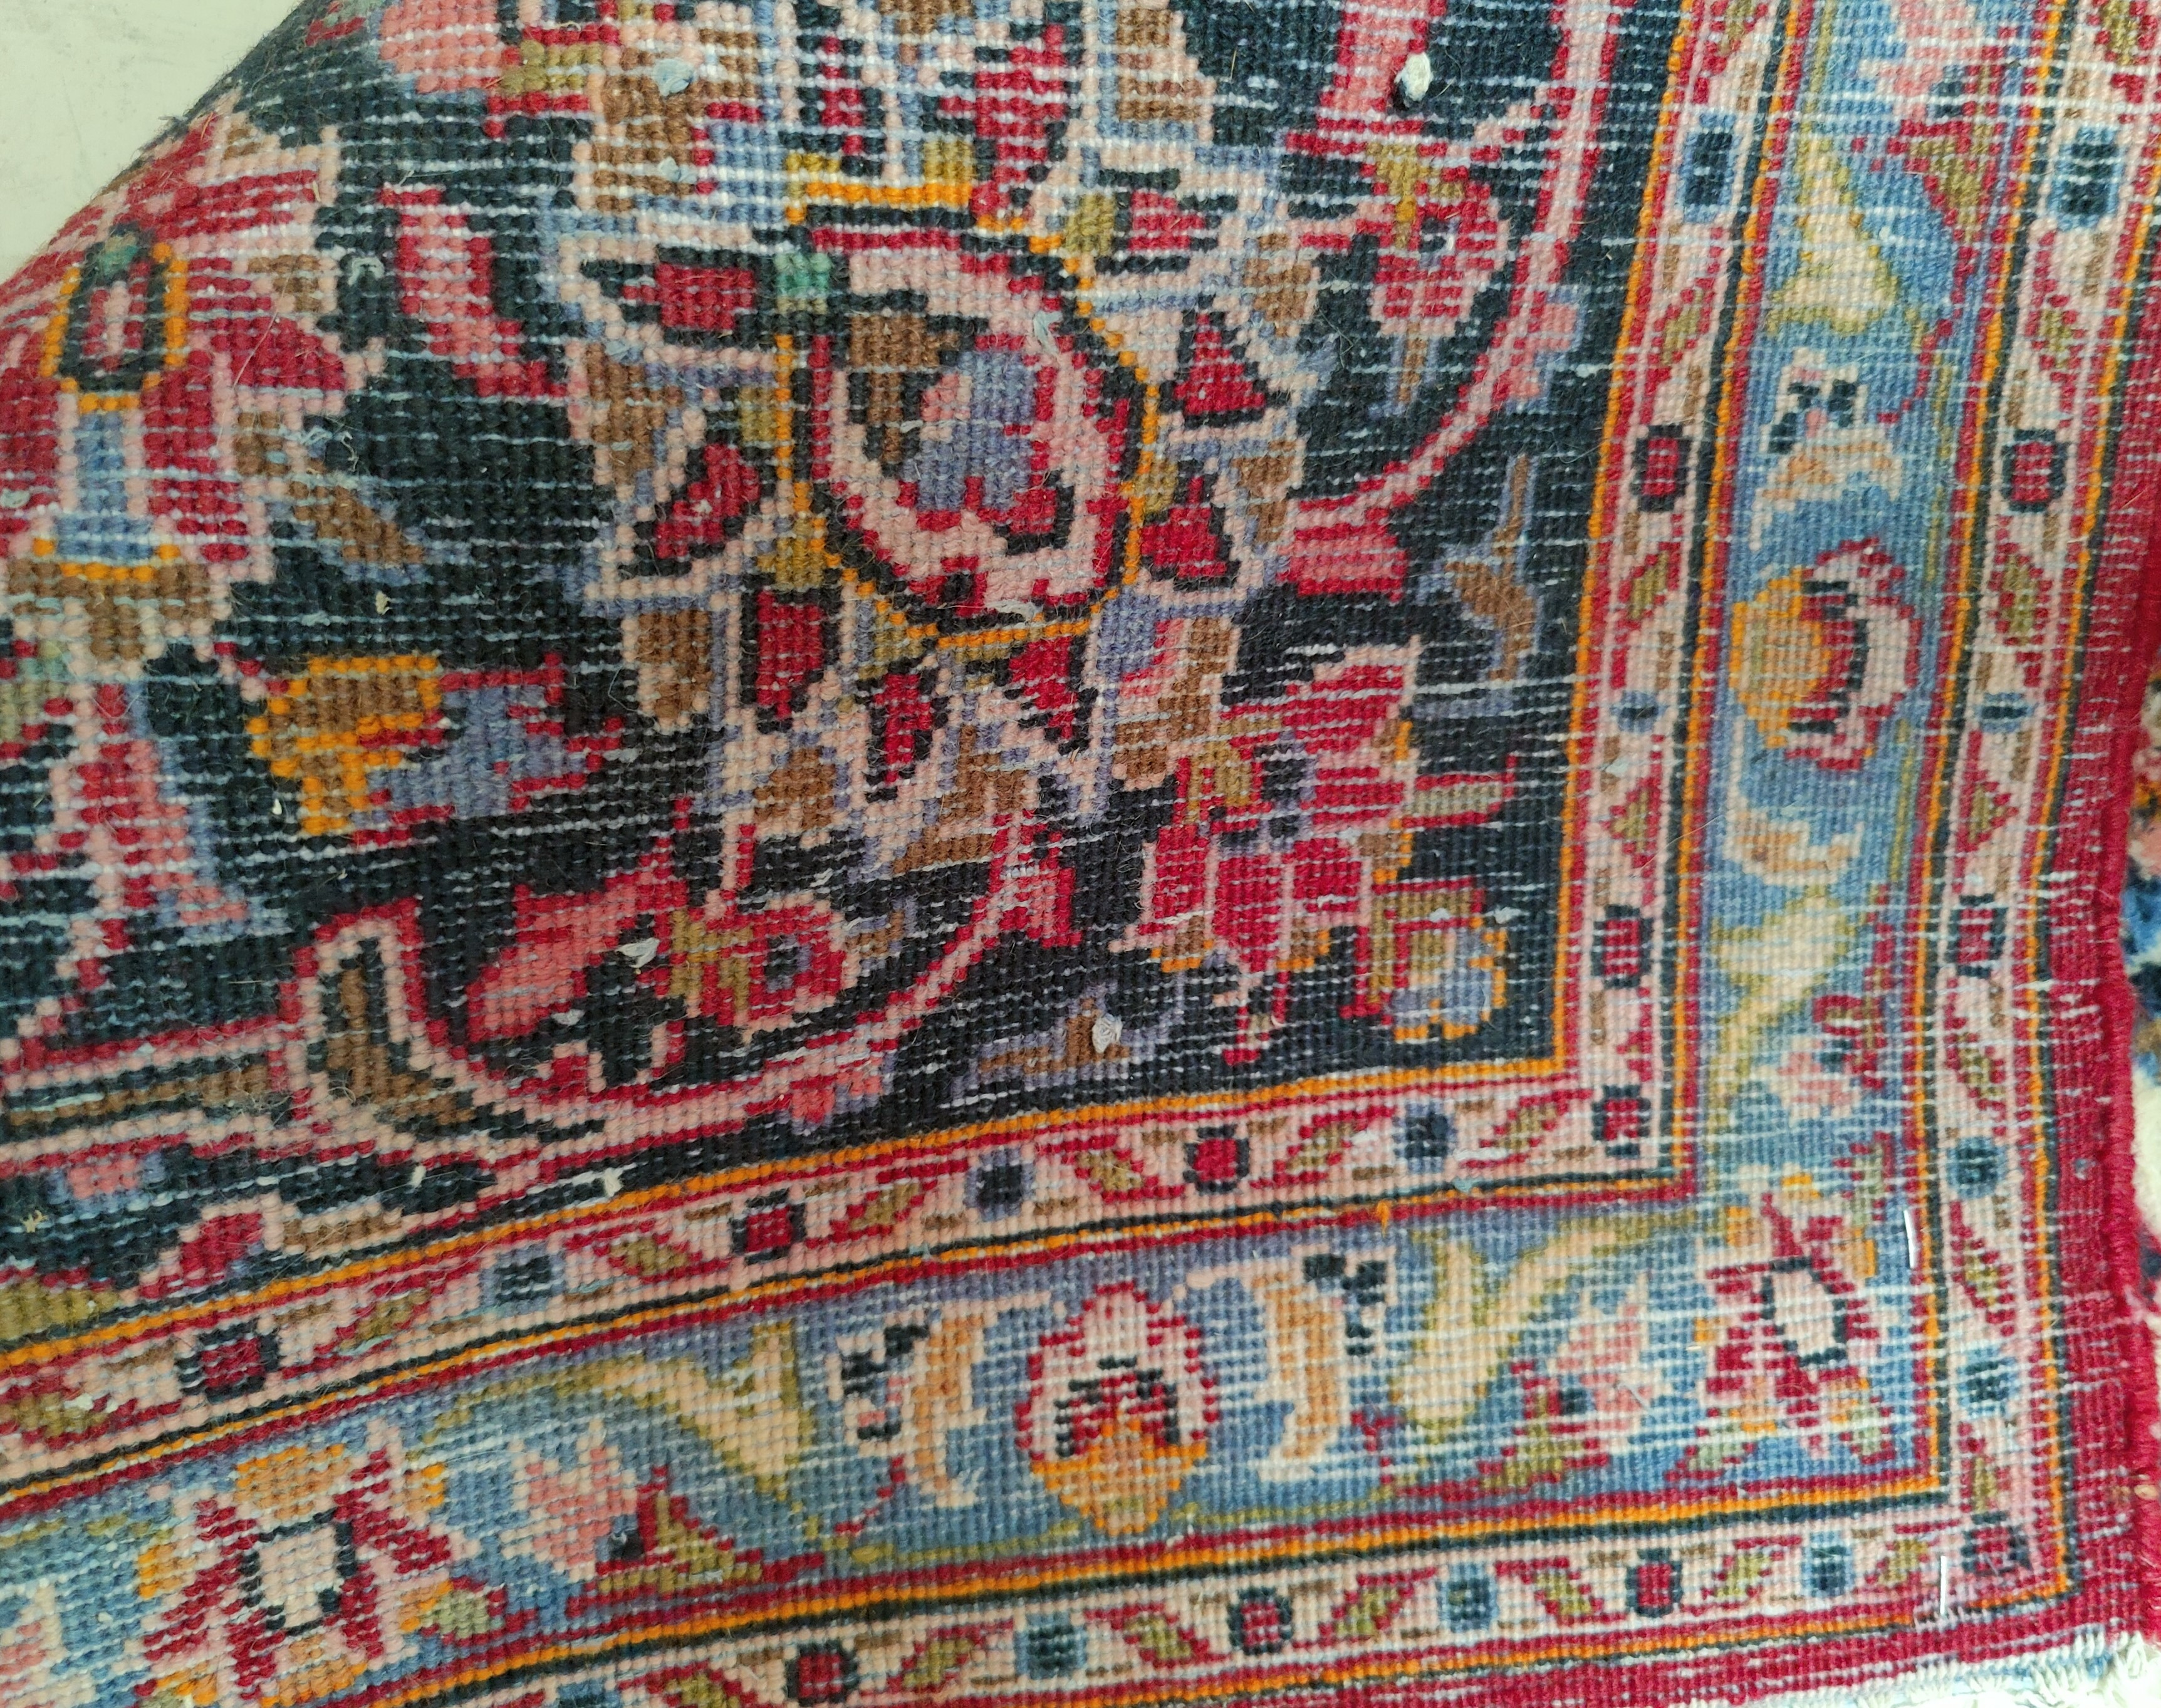 A mid 20th century Turkoman carpet, floral motifs on red ground multi-coloured, 9.5' x 12.5' approx - Image 2 of 4